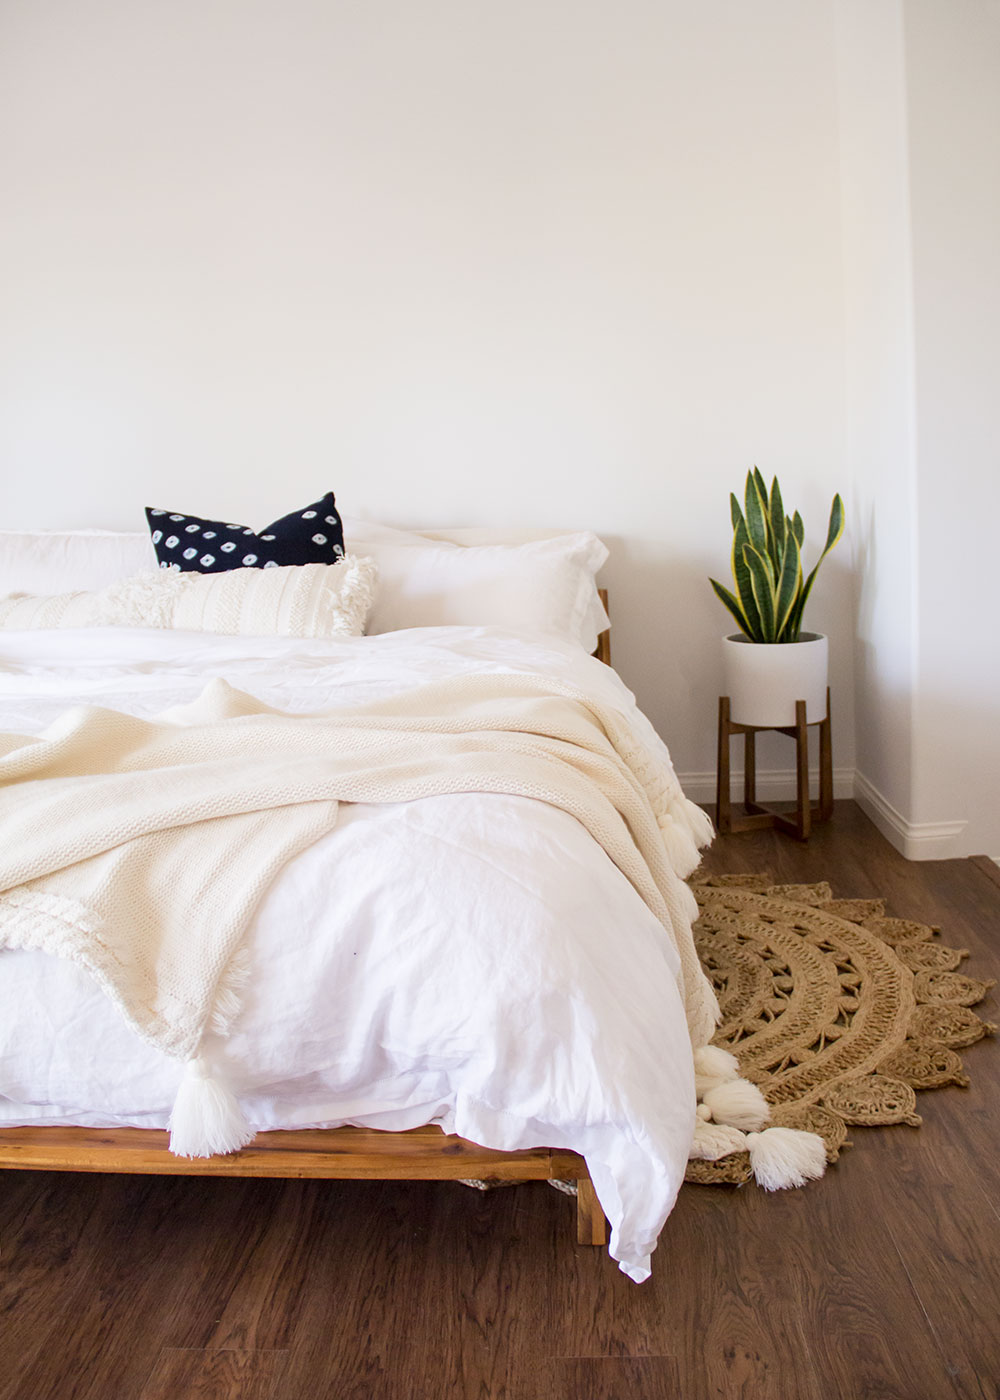 all of the resources for our new modern bohemian master bedroom | thelovedesignedlife.com